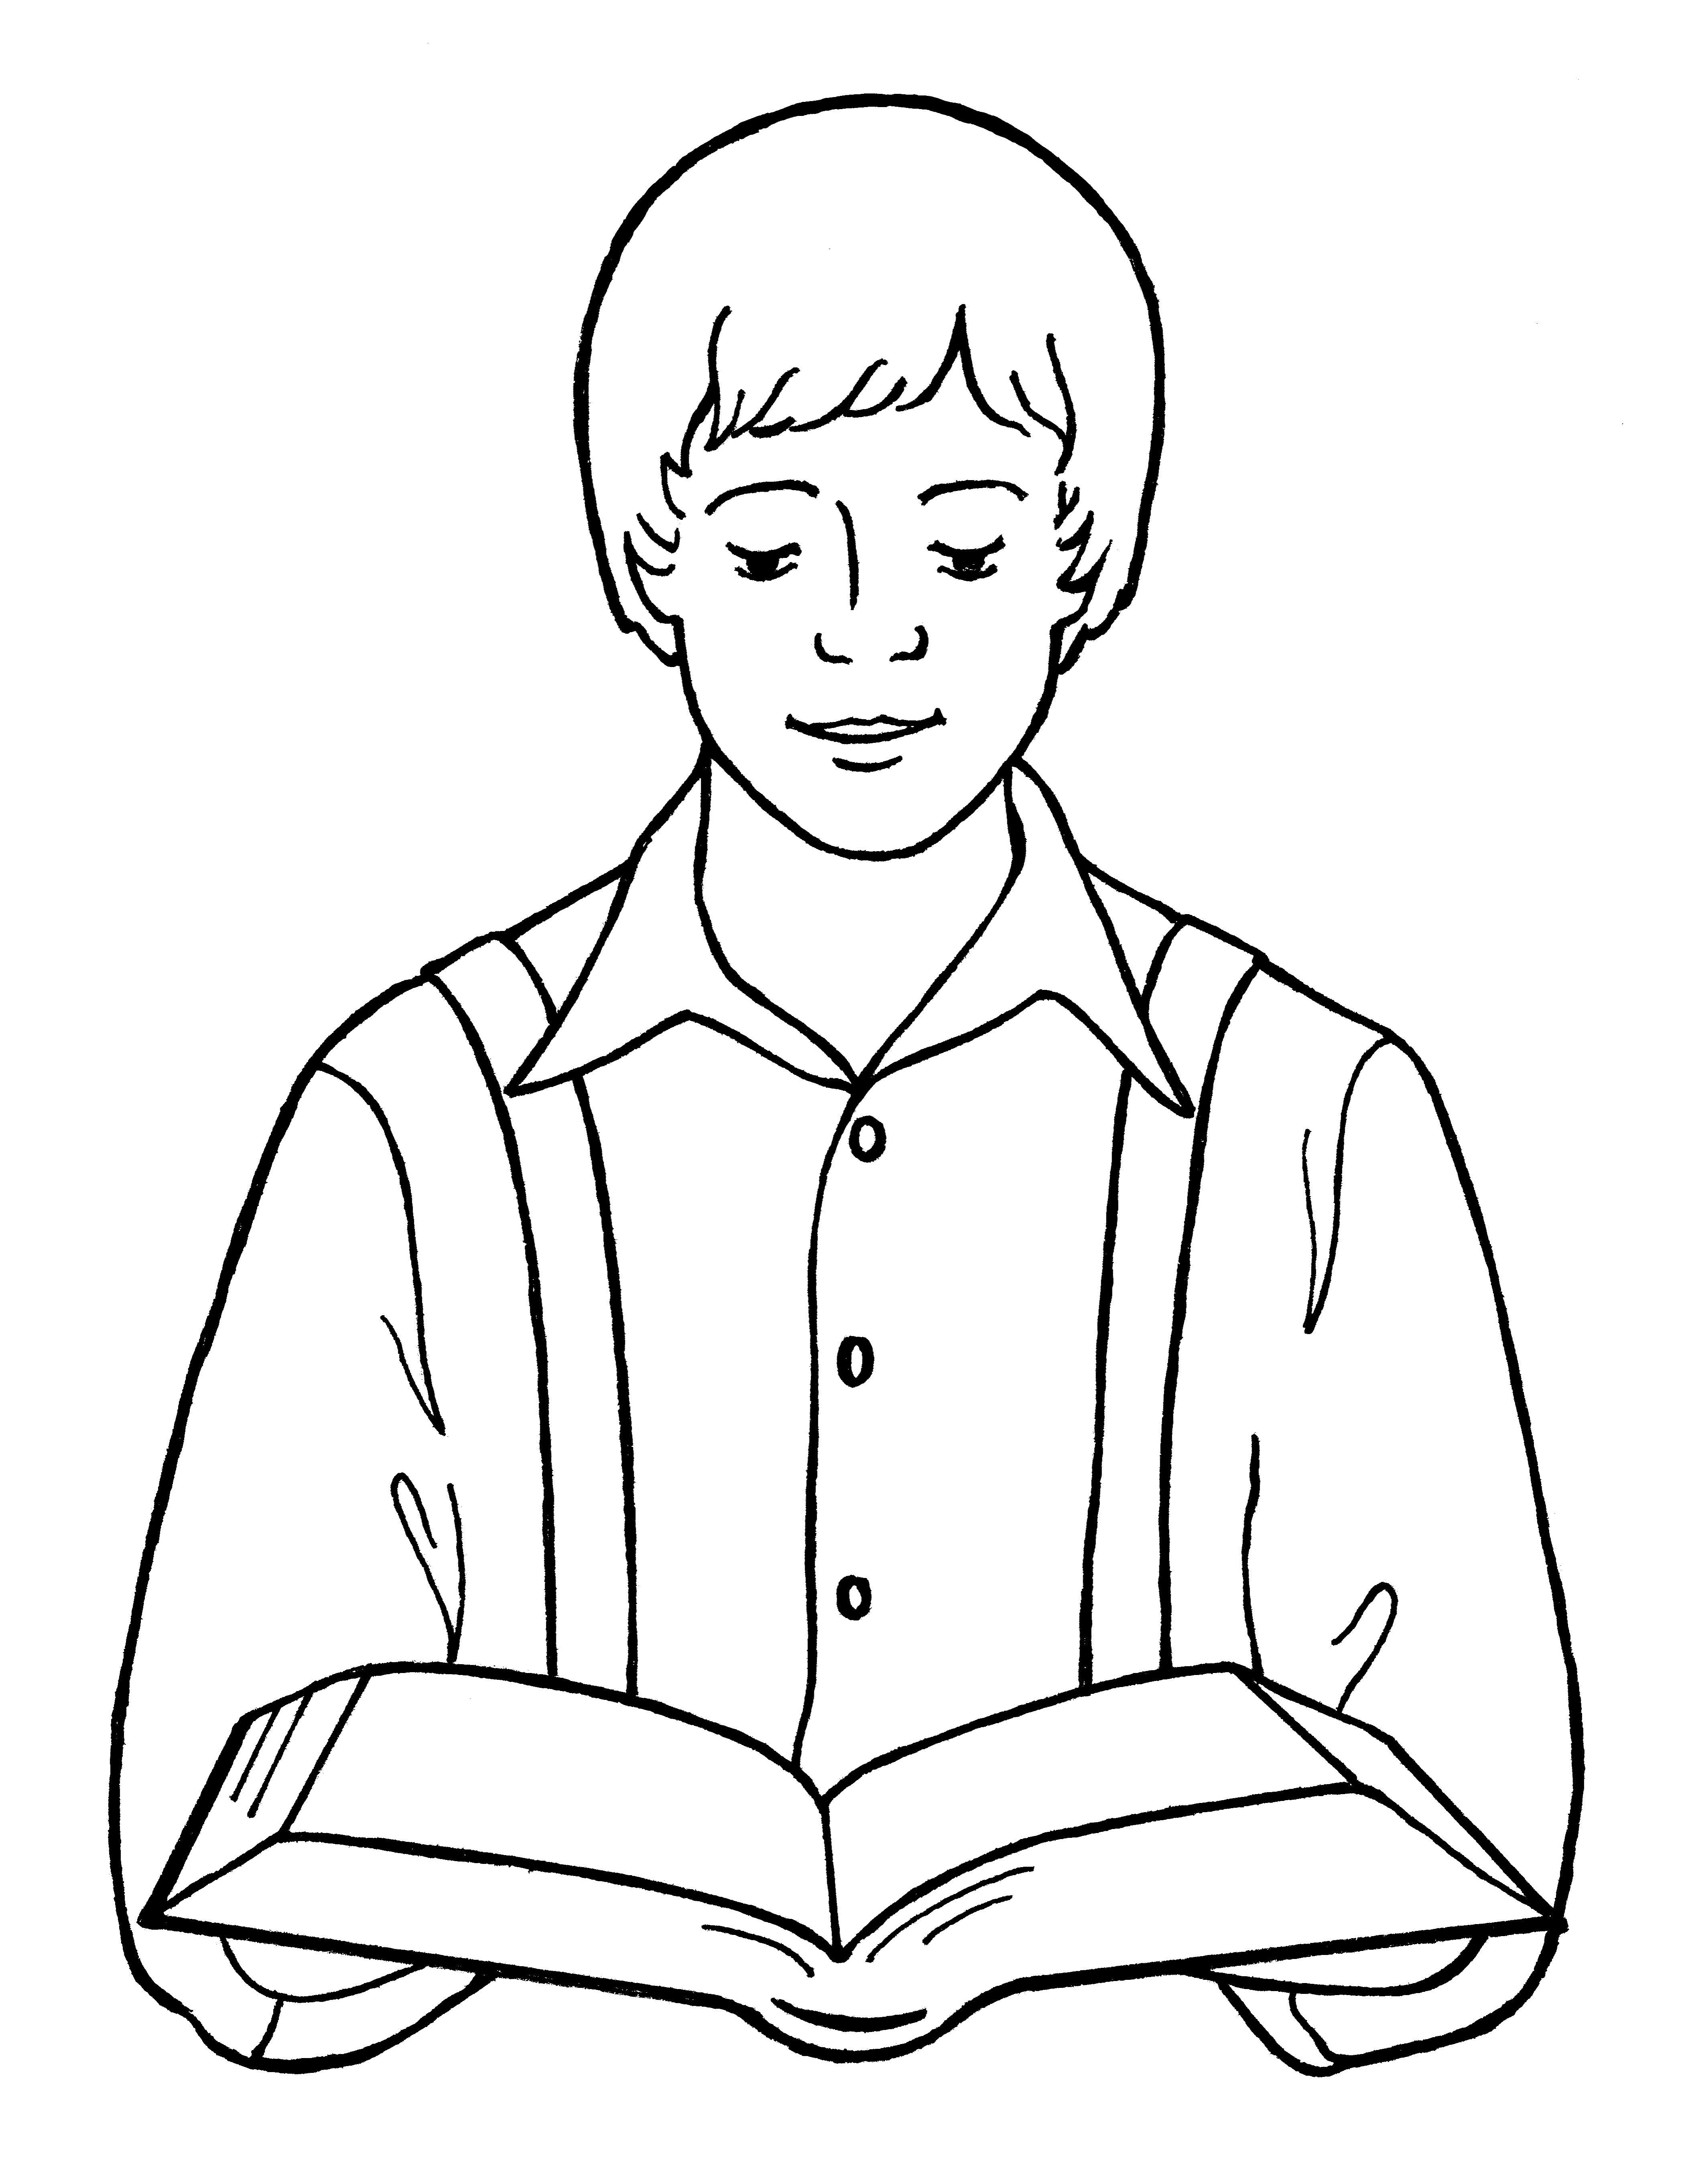 An illustration of Joseph Smith reading the scriptures, from the nursery manual Behold Your Little Ones (2008), page 91.